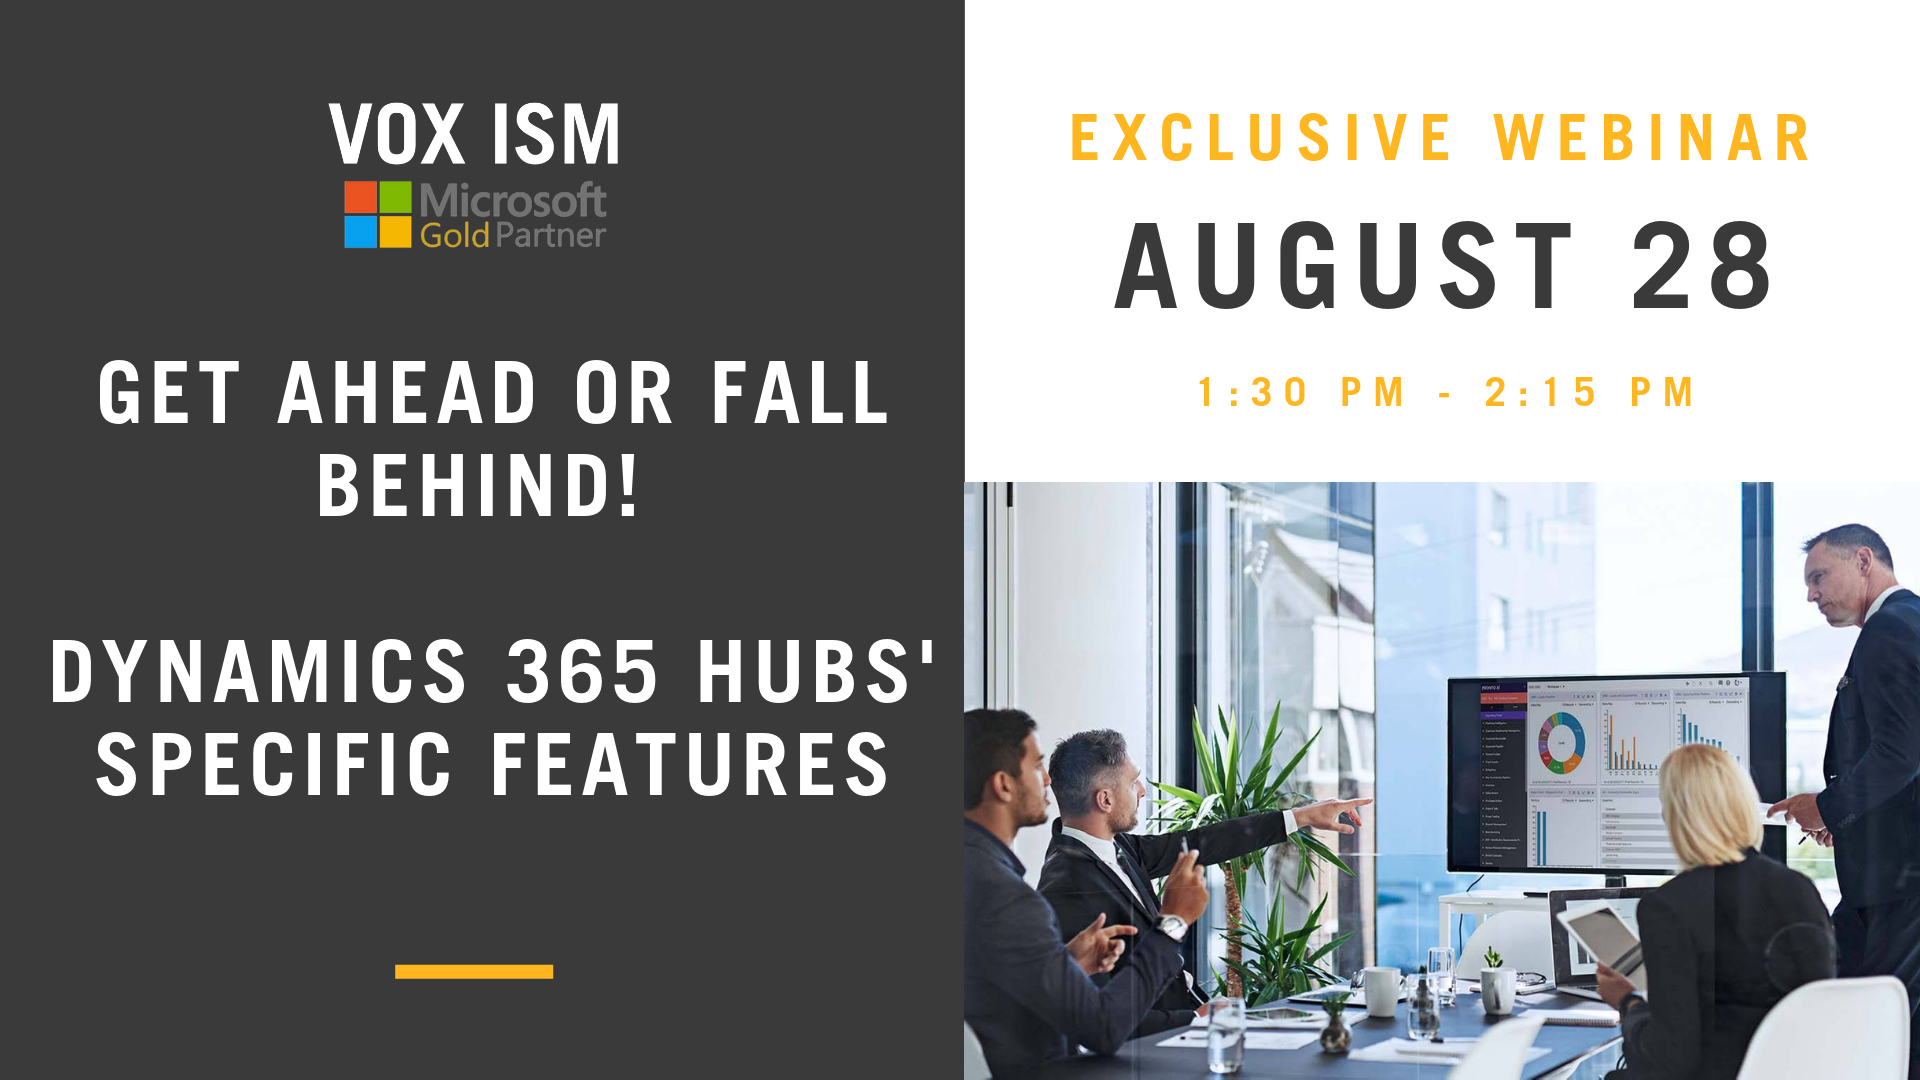 Get Ahead or Fall Behind. Dynamics 365 Hubs' Specific Features - August 28 - Webinar - VOX ISM